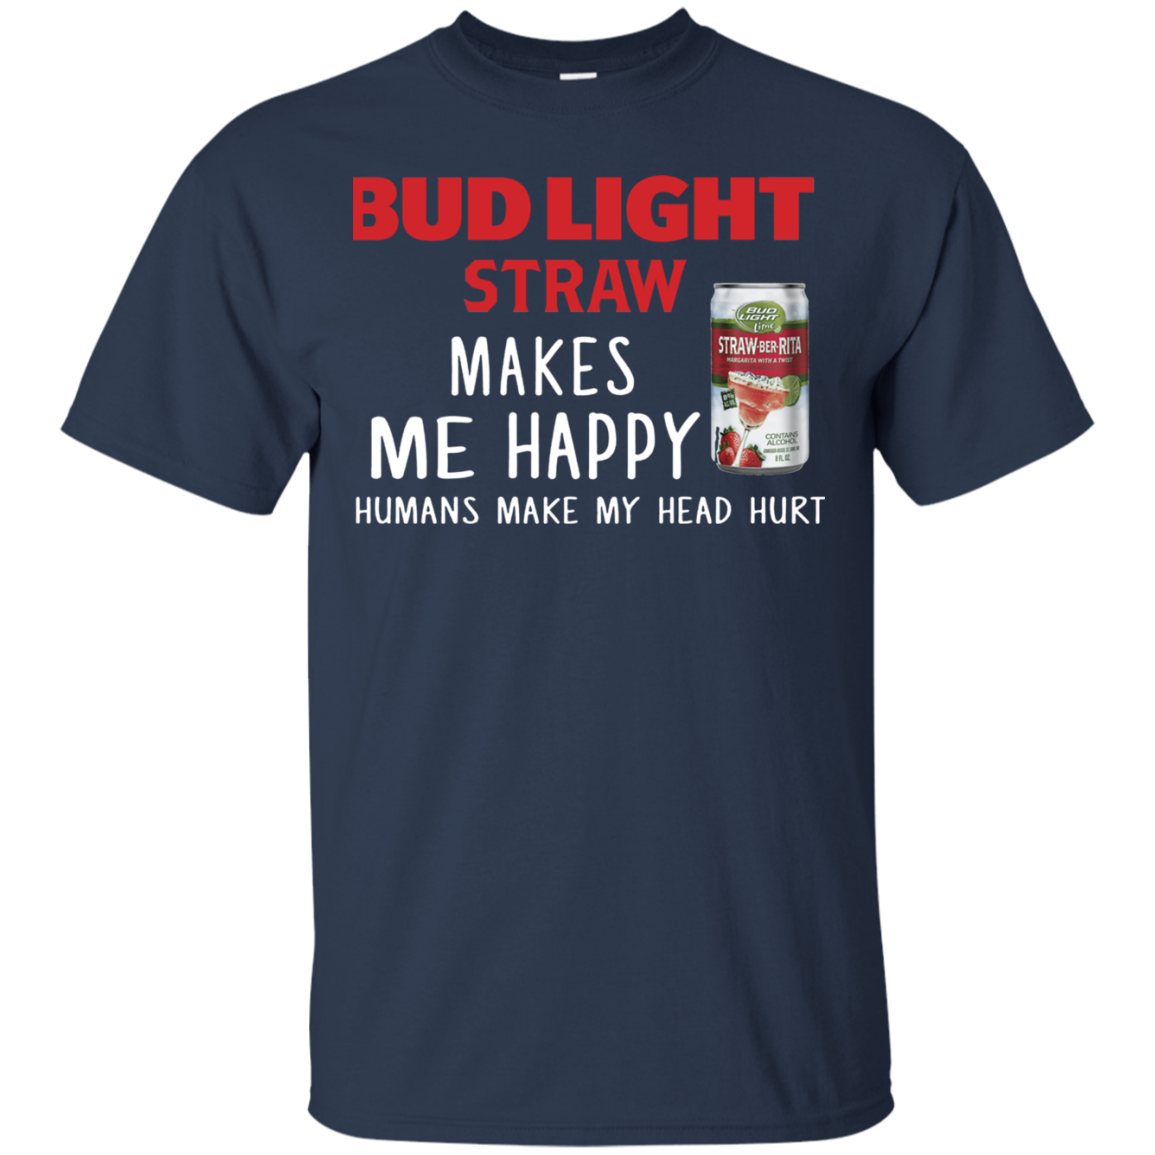 bud light lime straw ber rita makes me happy humans make my head hurt the pea nuts. Black Bedroom Furniture Sets. Home Design Ideas